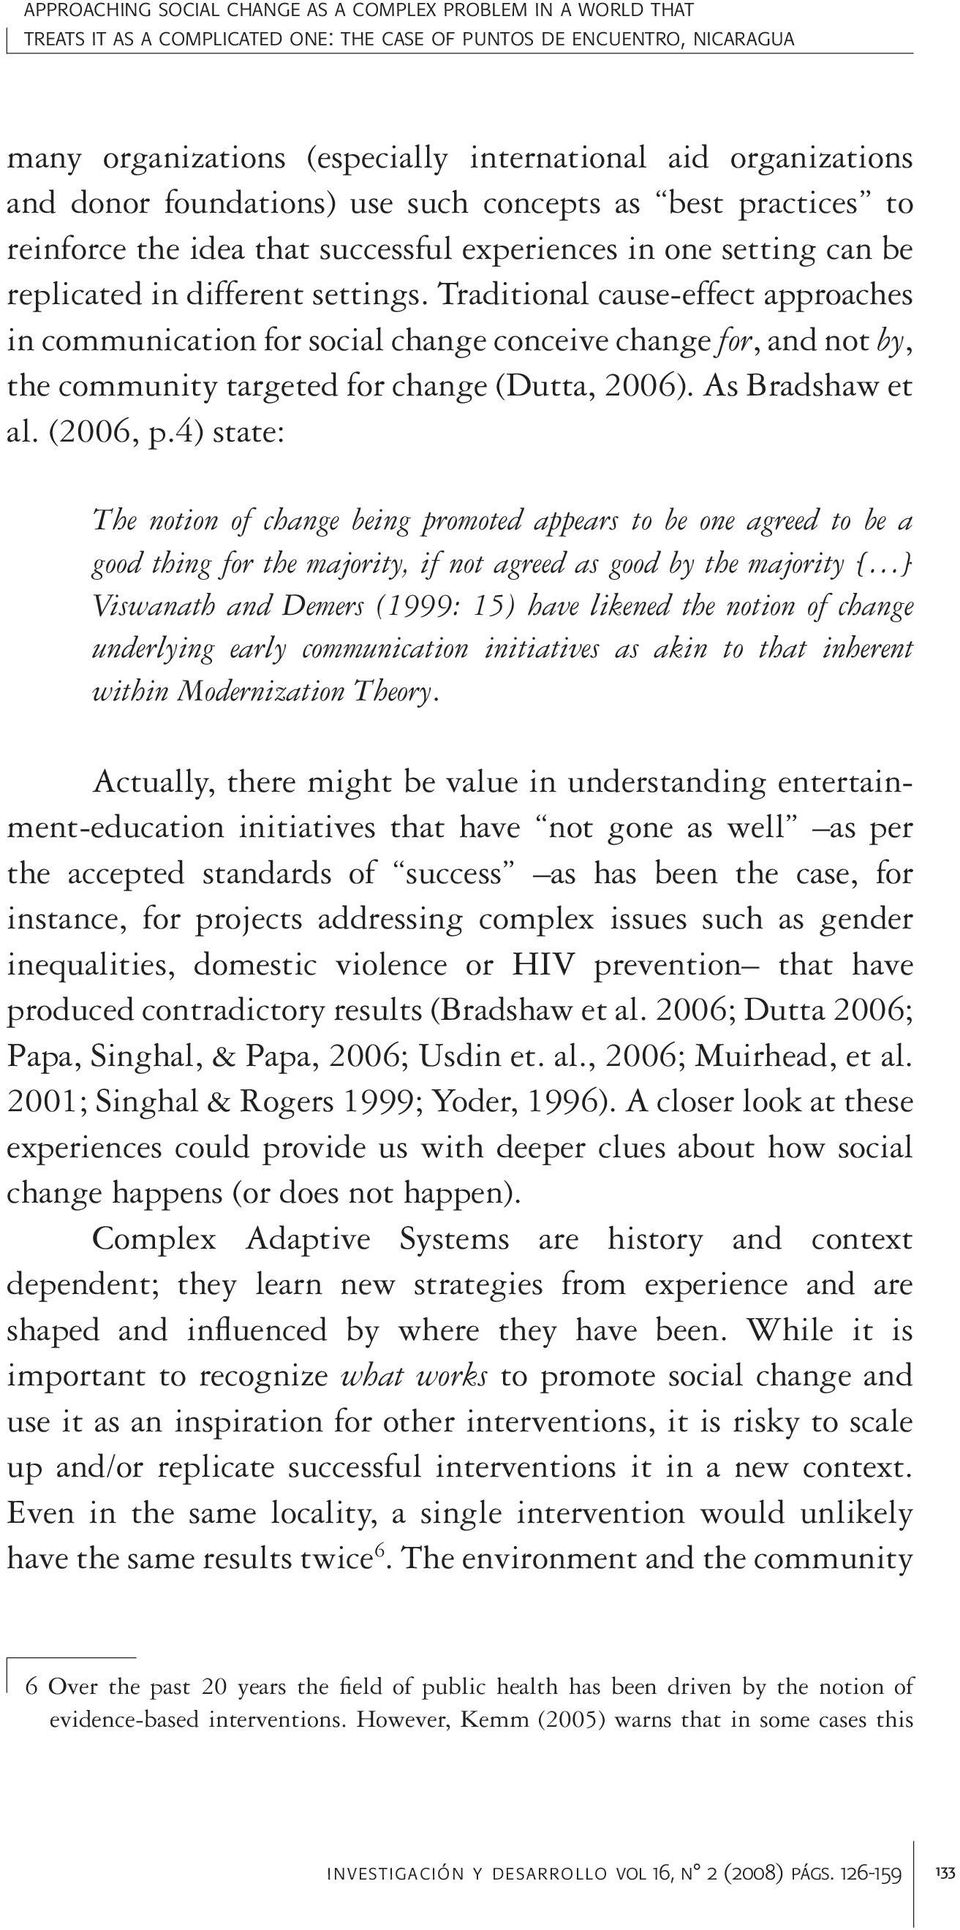 Traditional cause-effect approaches in communication for social change conceive change for, and not by, the community targeted for change (Dutta, 2006). As Bradshaw et al. (2006, p.